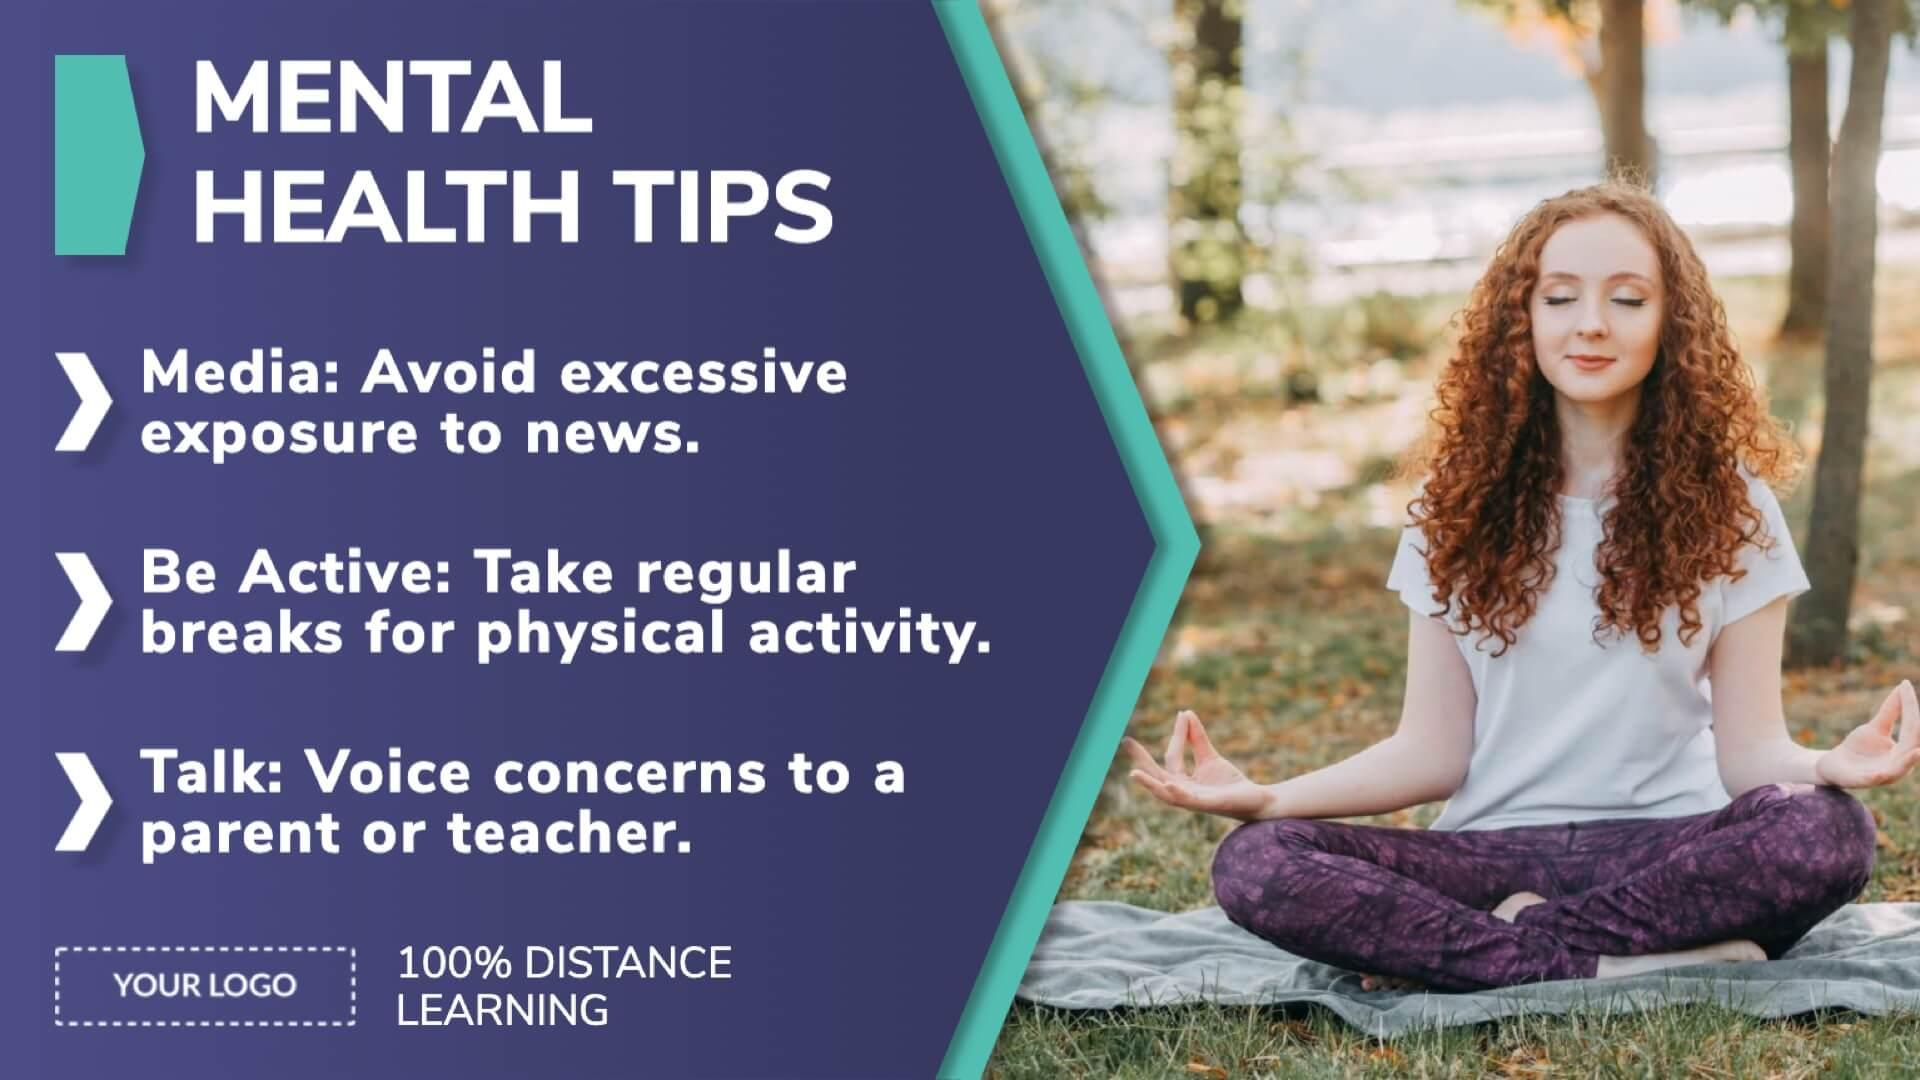 Distance Learning Mental Health Tips Digital Signage Template